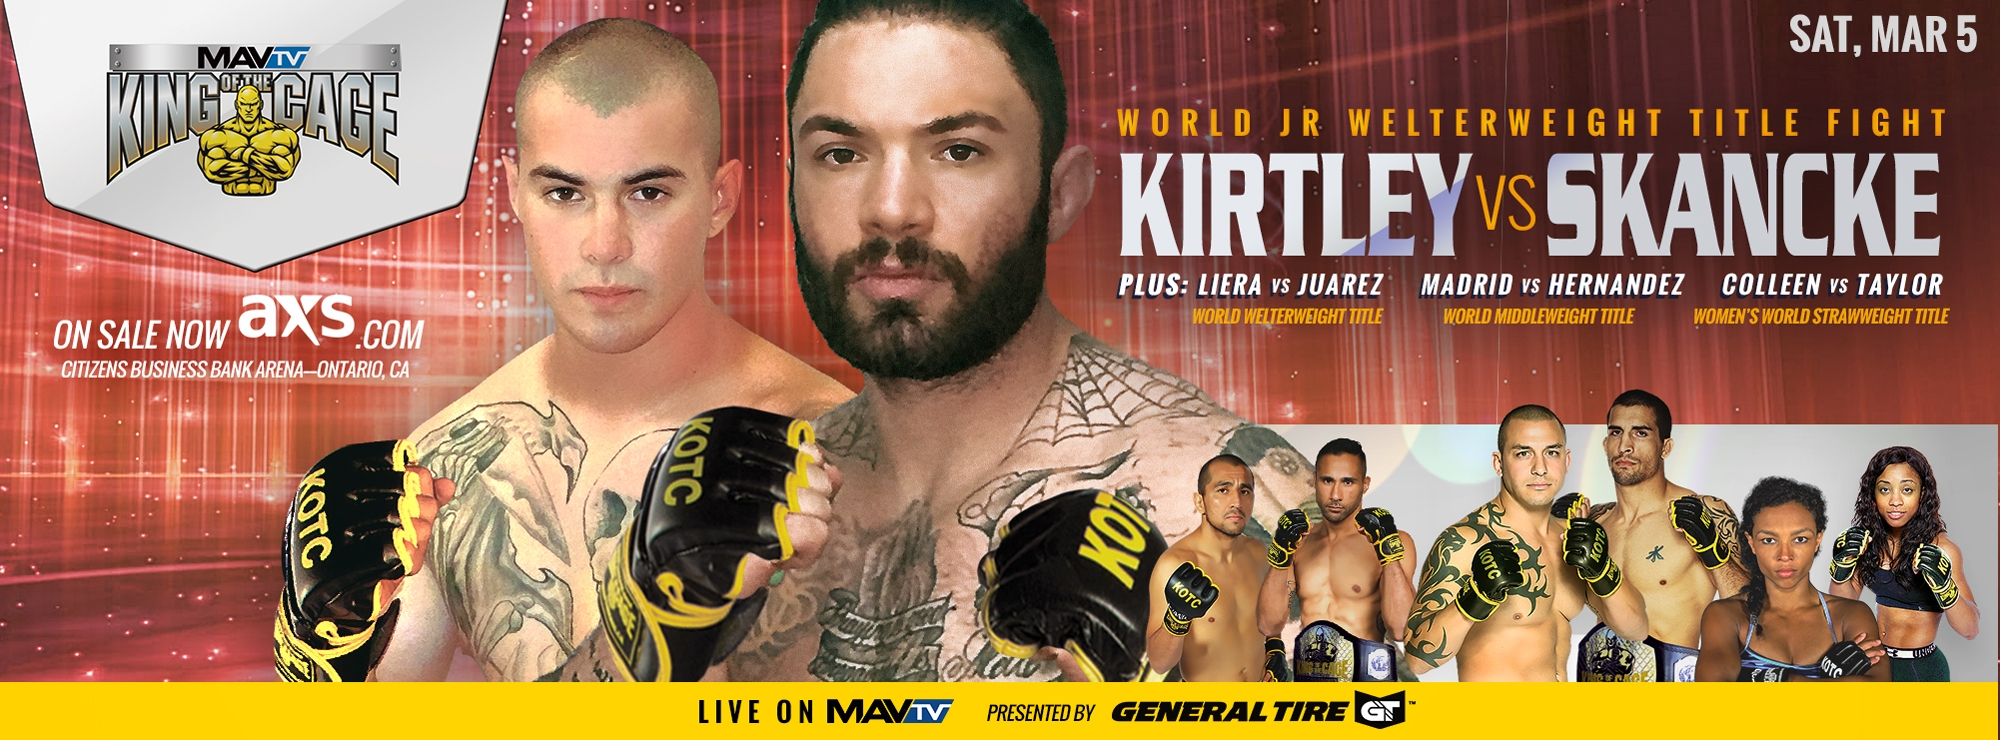 @kingofthecage Cover Image